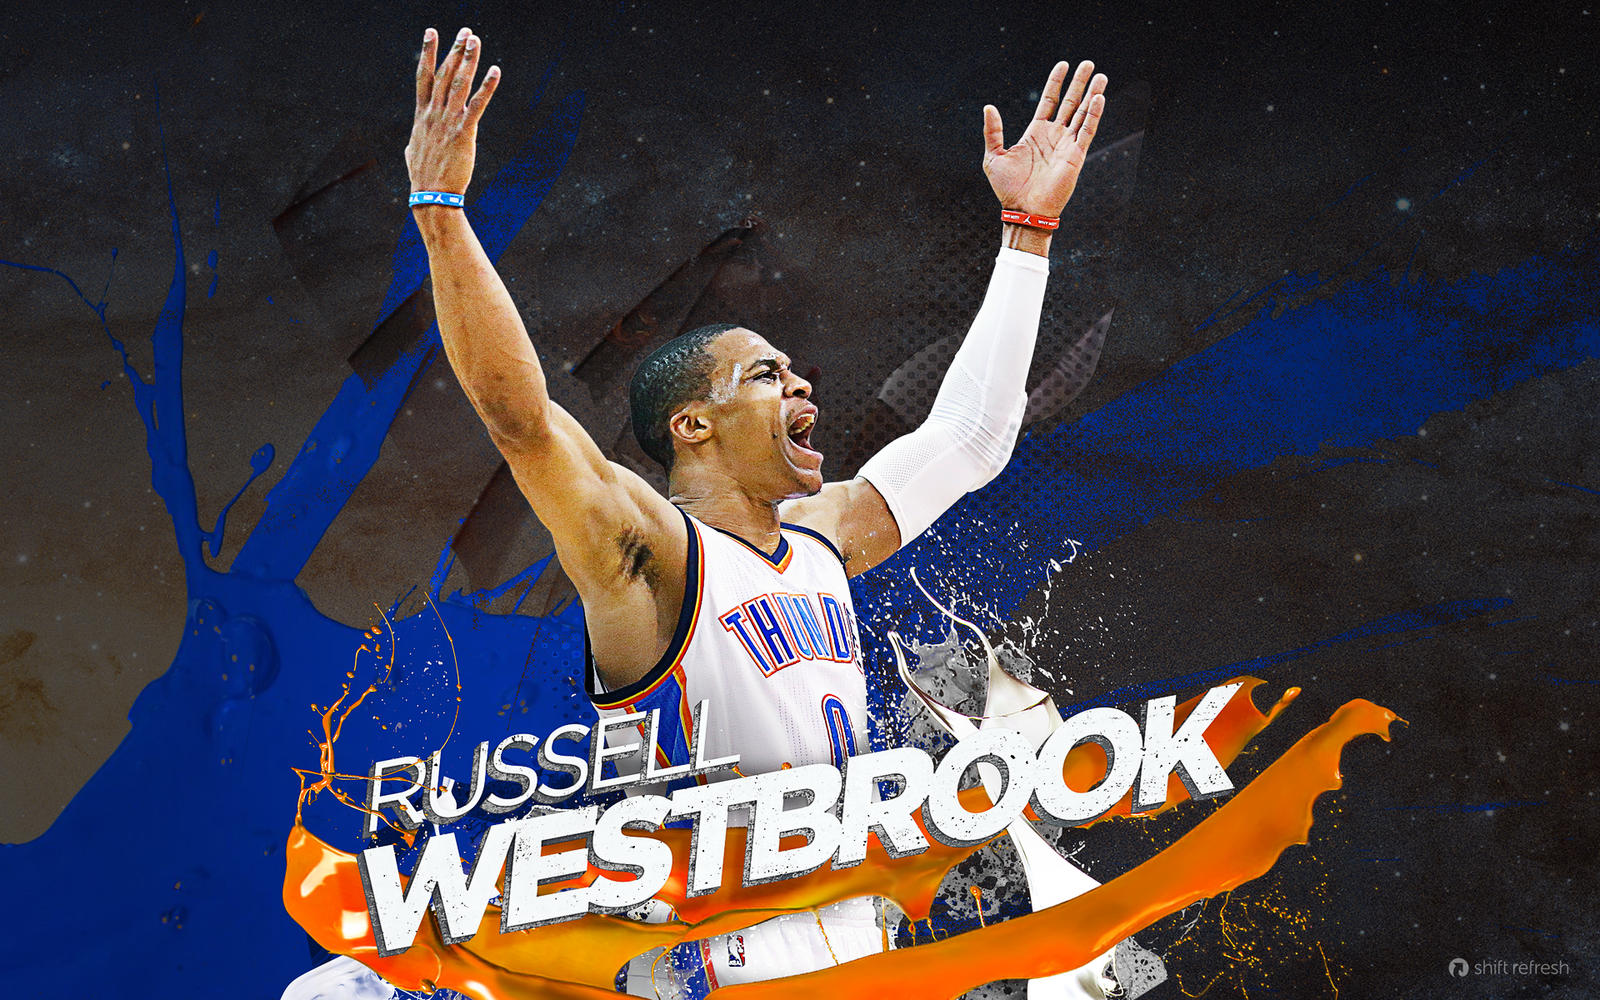 russell westbrook wallpaper by skythlee on deviantart